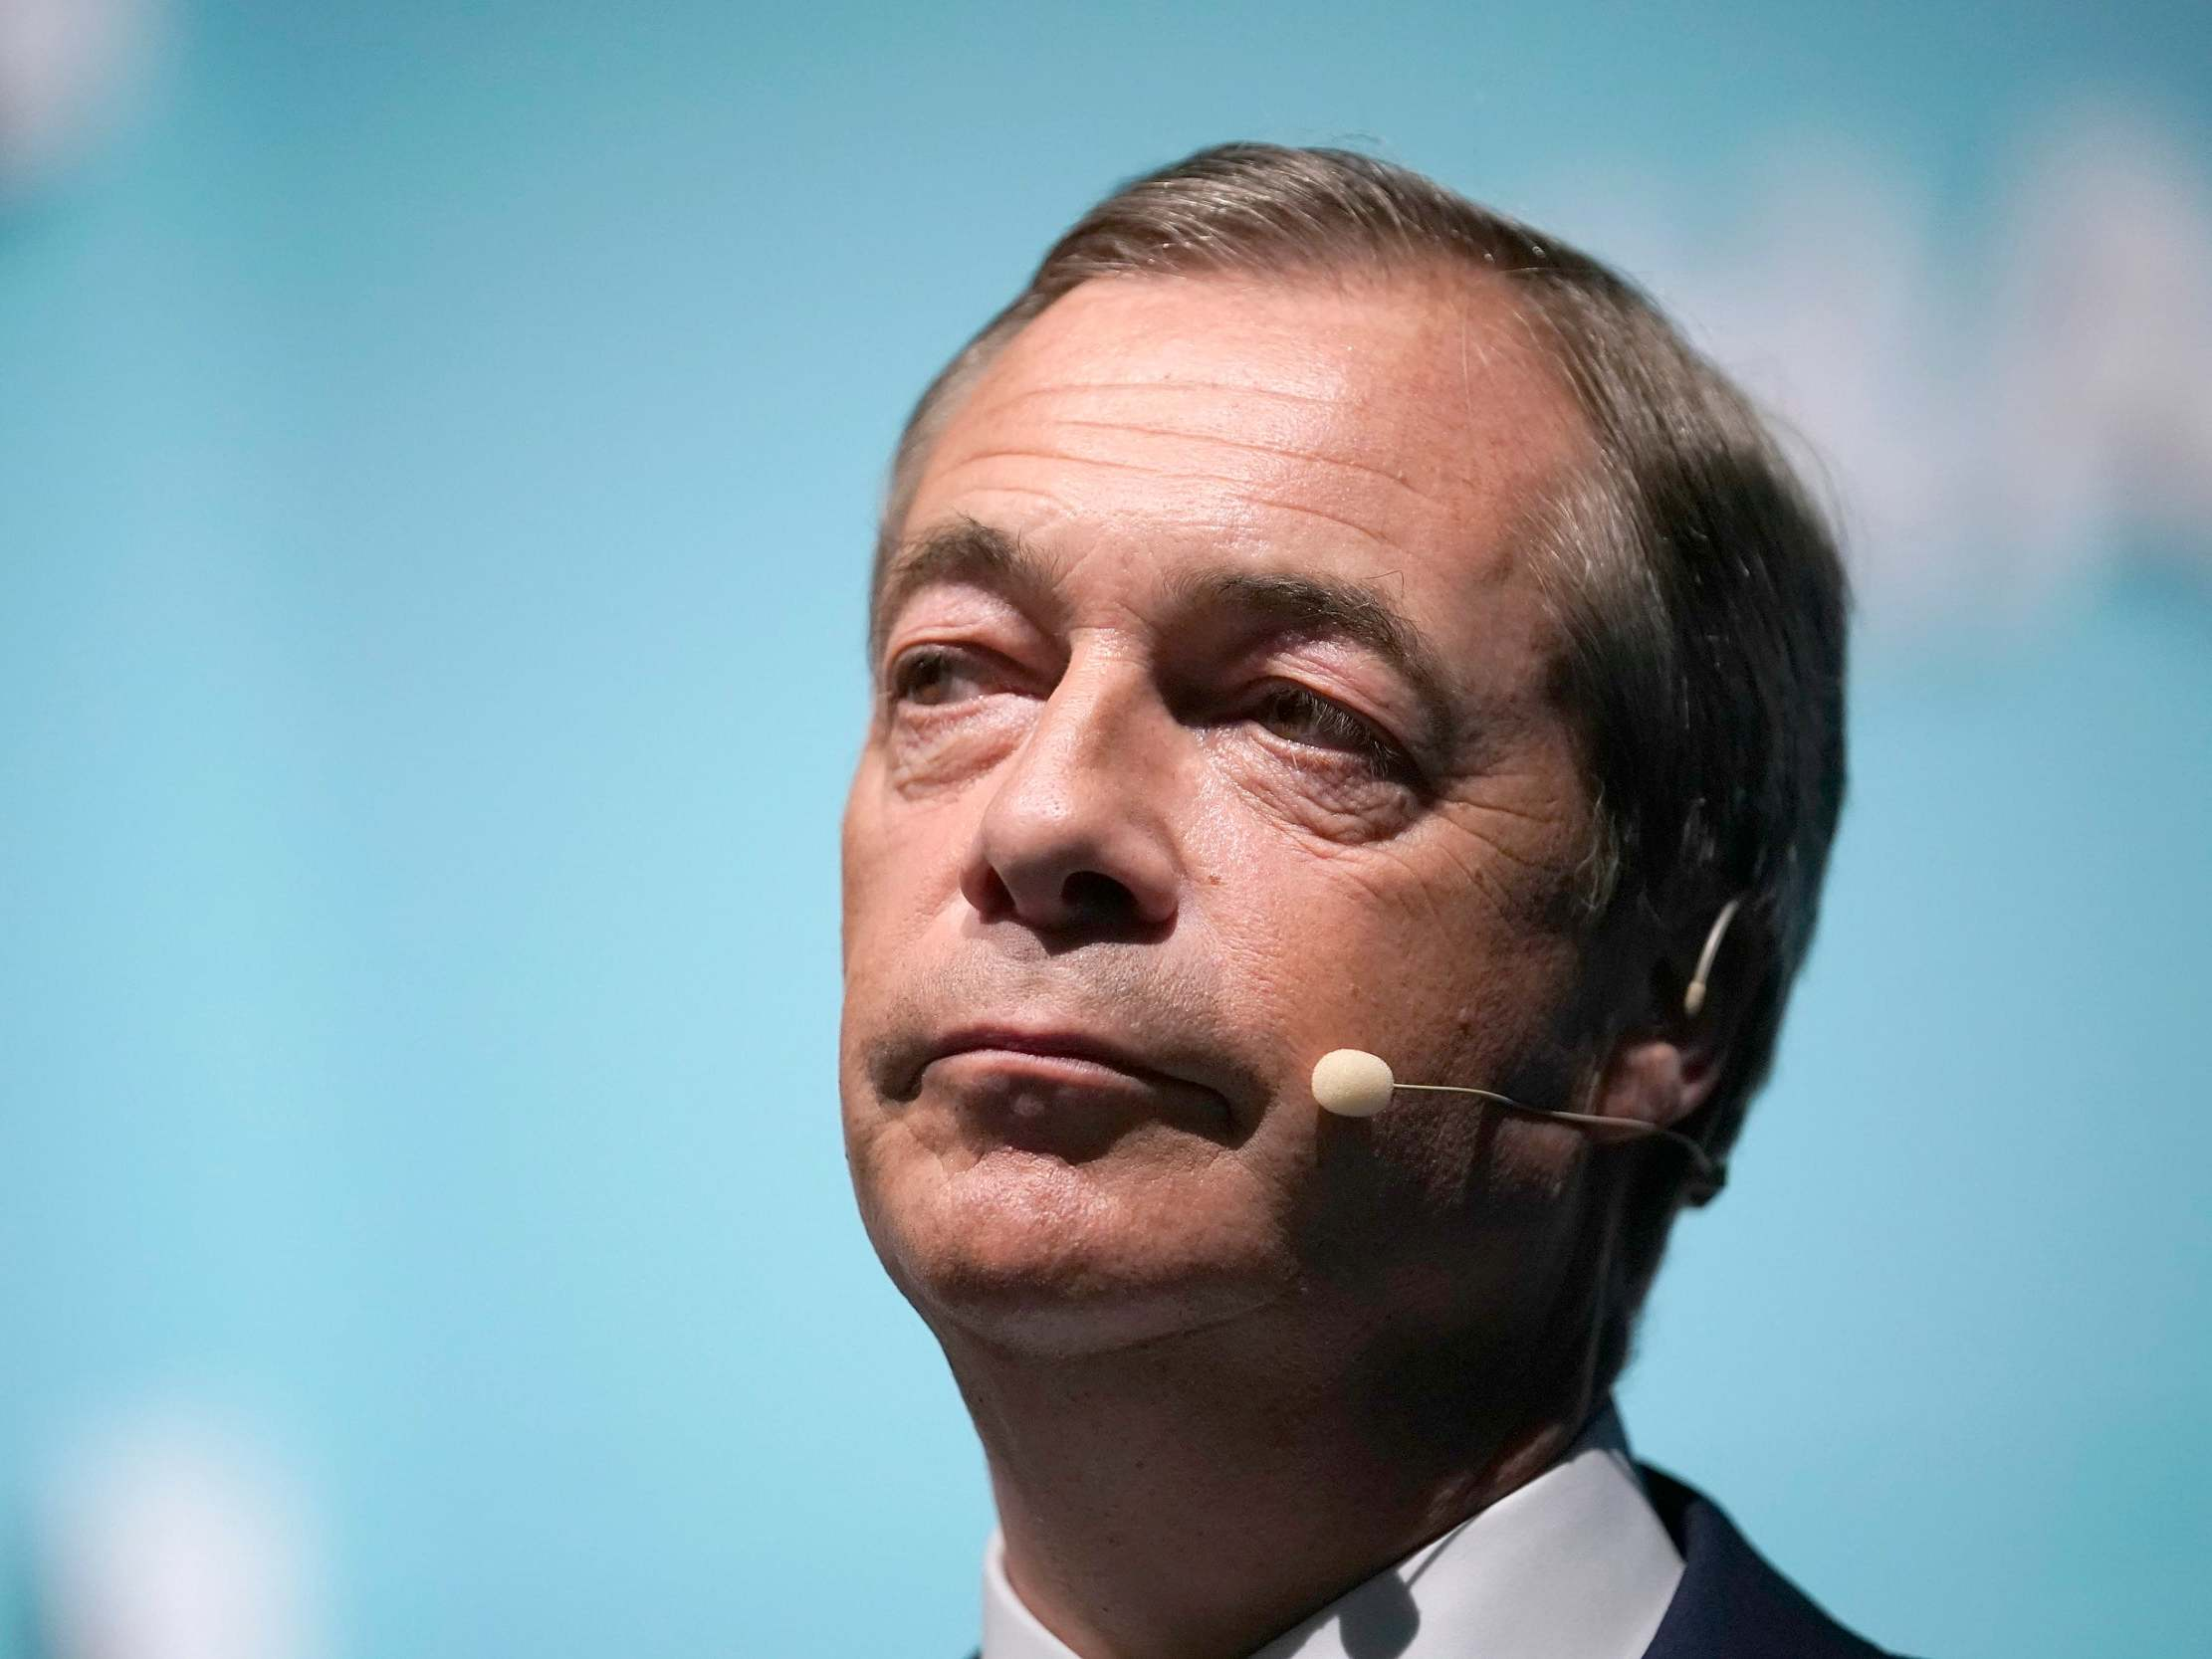 Nigel Farage 'should never be allowed anywhere near government', Boris Johnson's team says